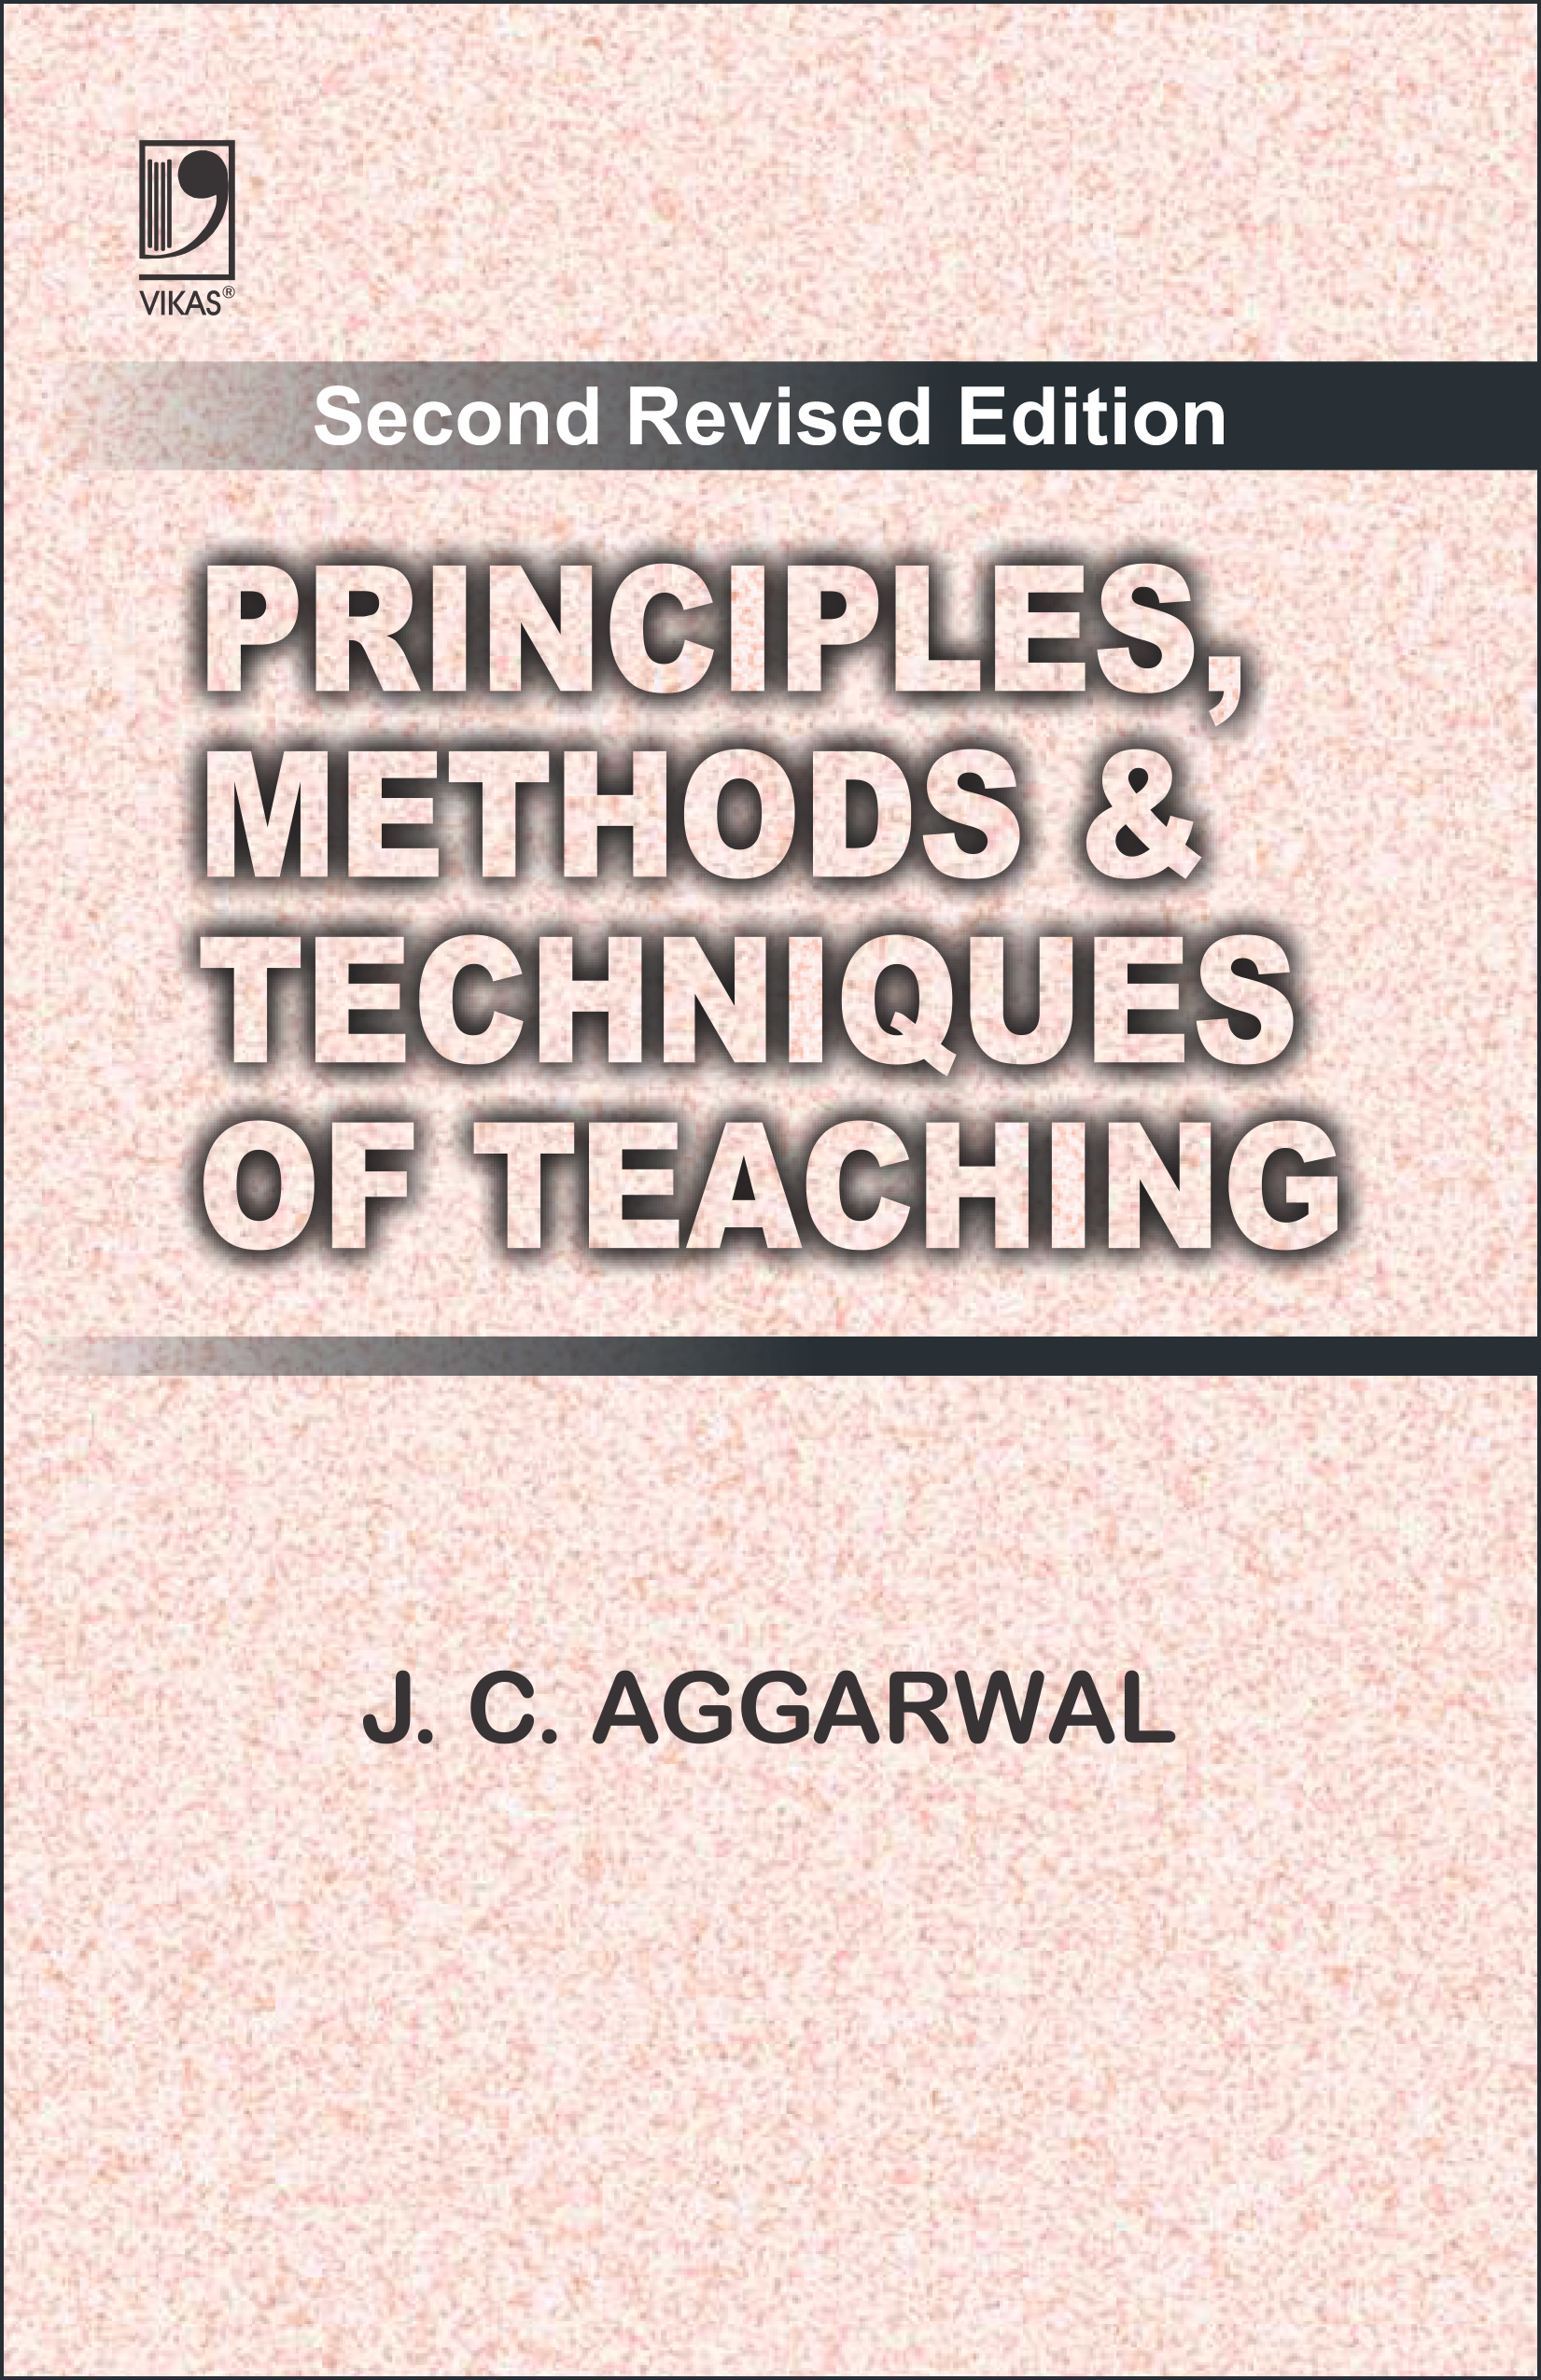 Principles, Methods and Techniques of Teaching, 2/e